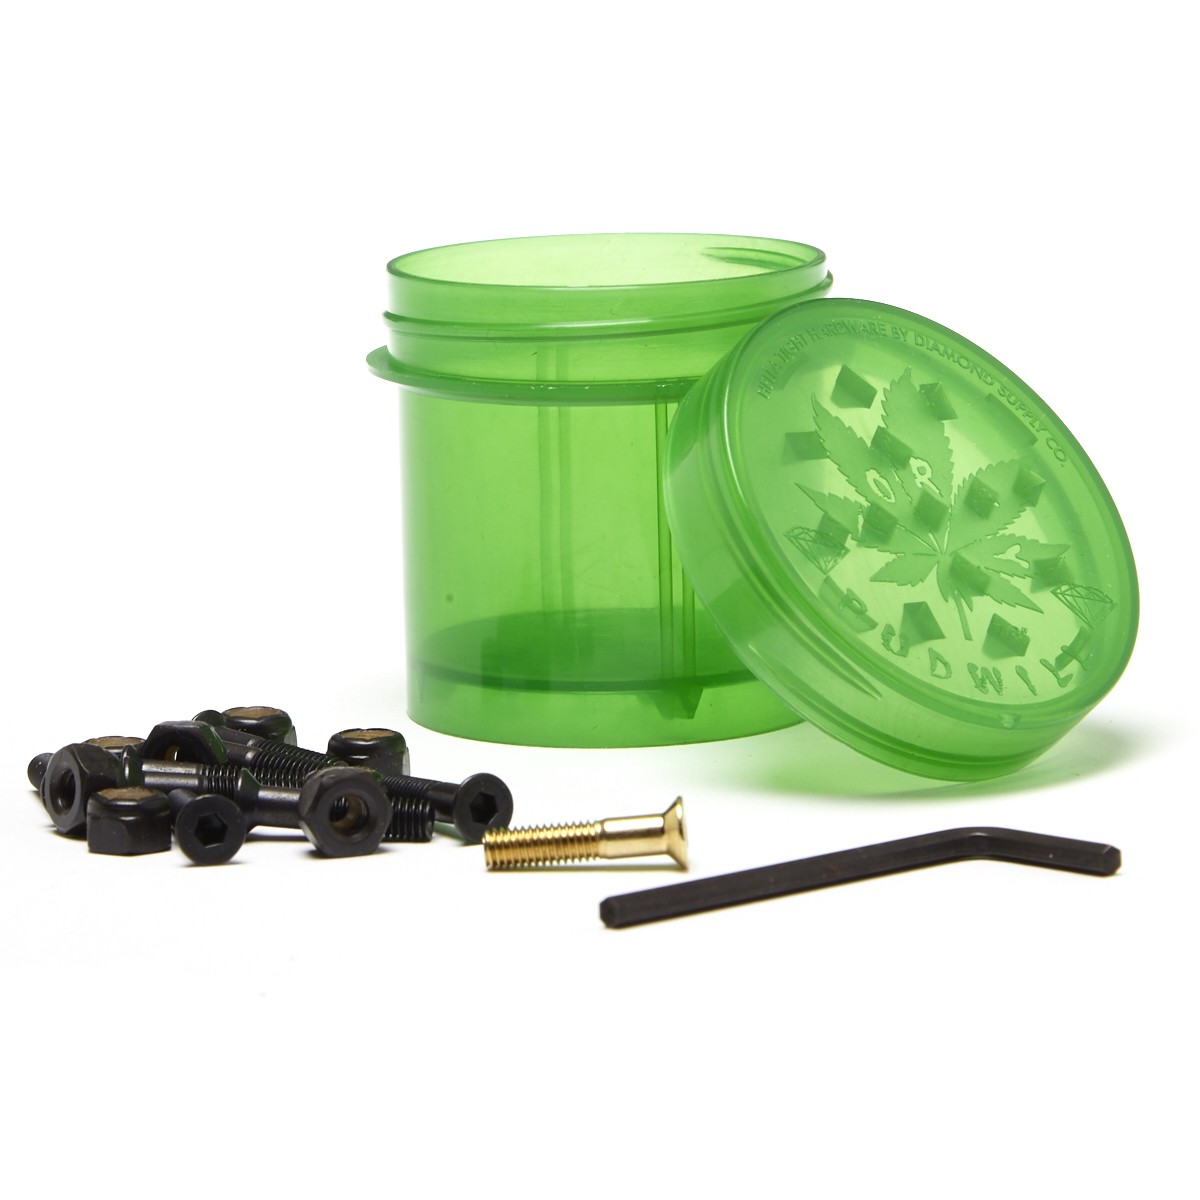 diamond-hella-tight -torey-pudwill-7-8-hardware-w-grinder-green-1.1506665731.jpg 78d0ea2de